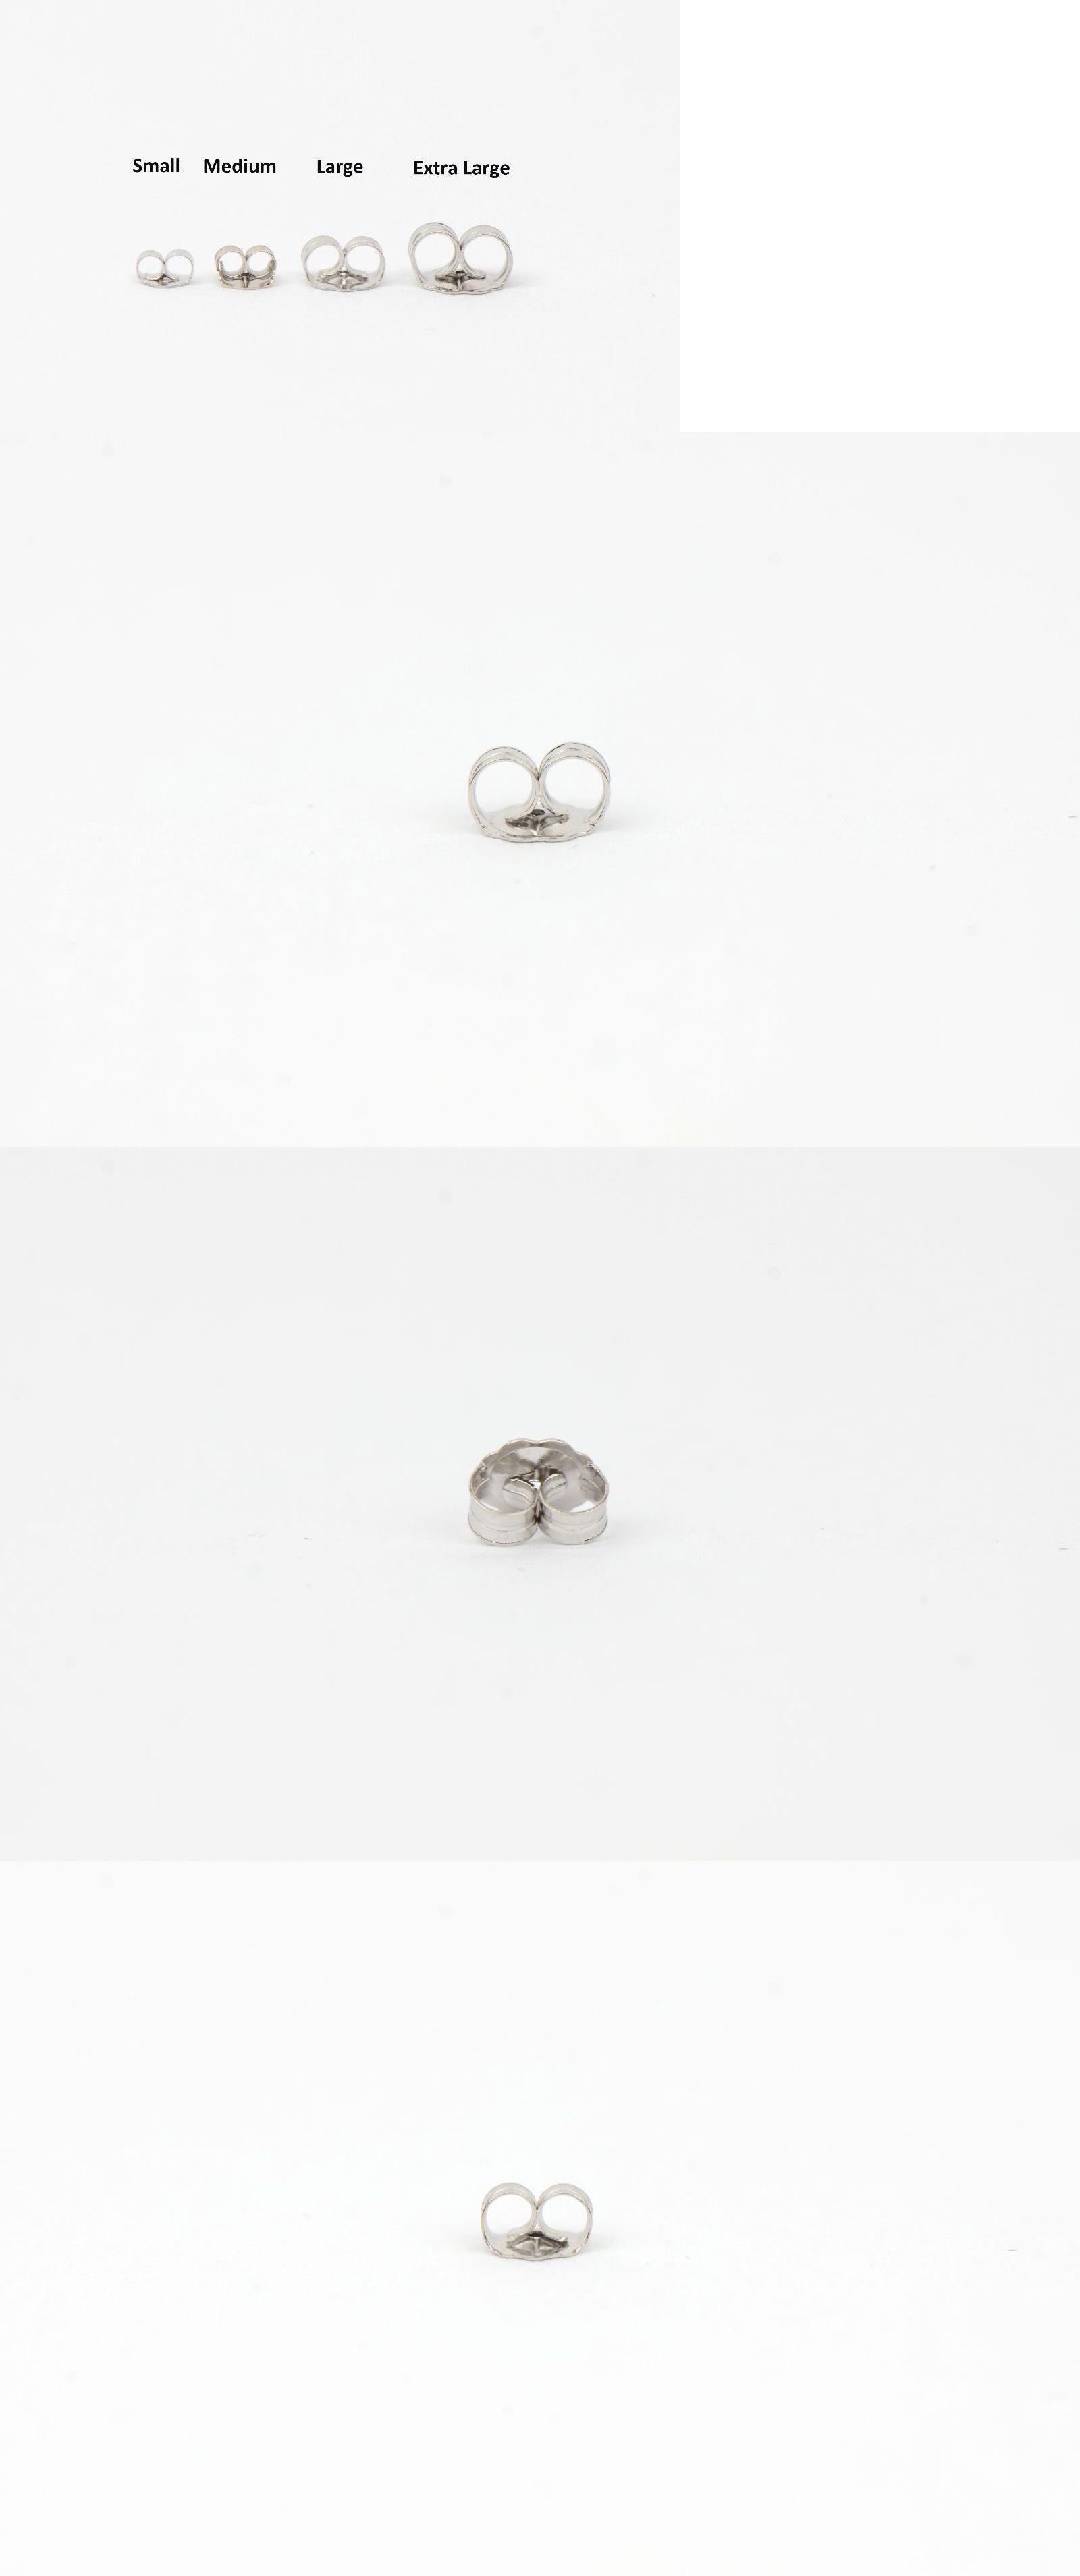 Earring Findings 150051 14k White Gold Push Back Erfly Backing Small Medium Large By Pc It Now Only 10 99 On Ebay